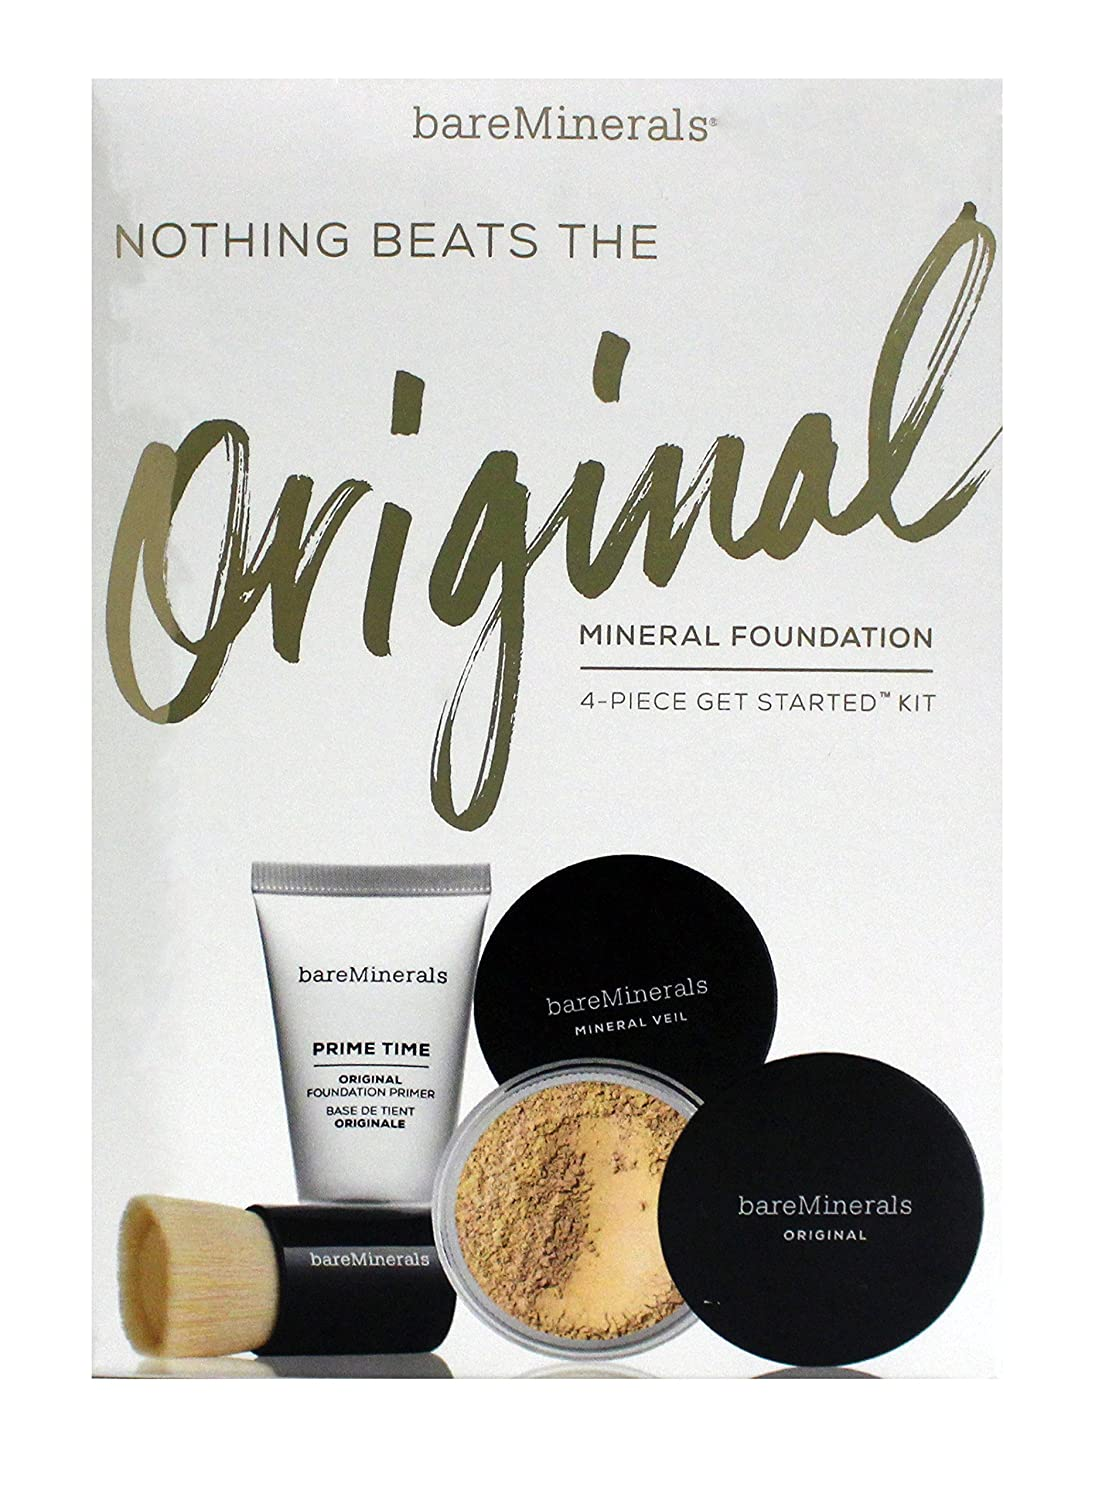 Bare Minerals Nothing Beats Org Gsk Fairly Light Set,, 0.16 Ounce